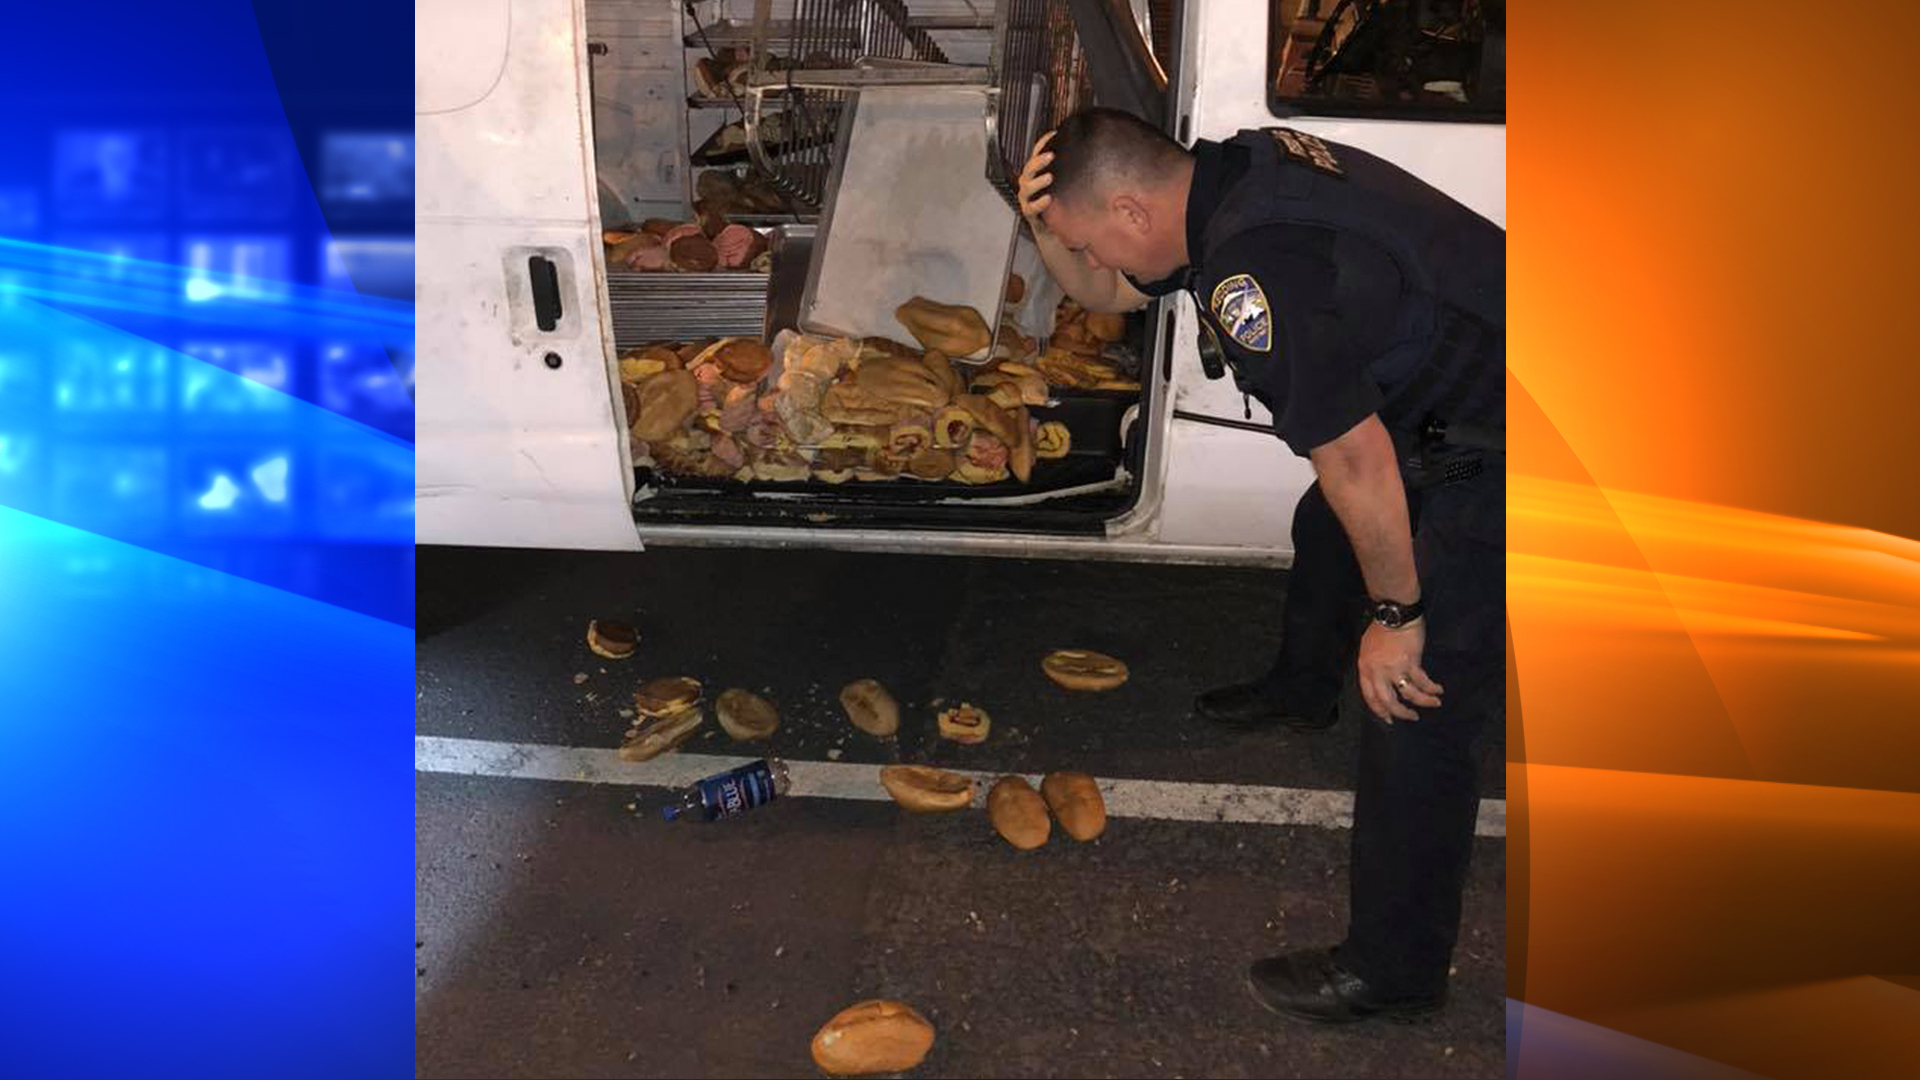 Redding police released this photo of an officer reacting to the destroyed pastries.